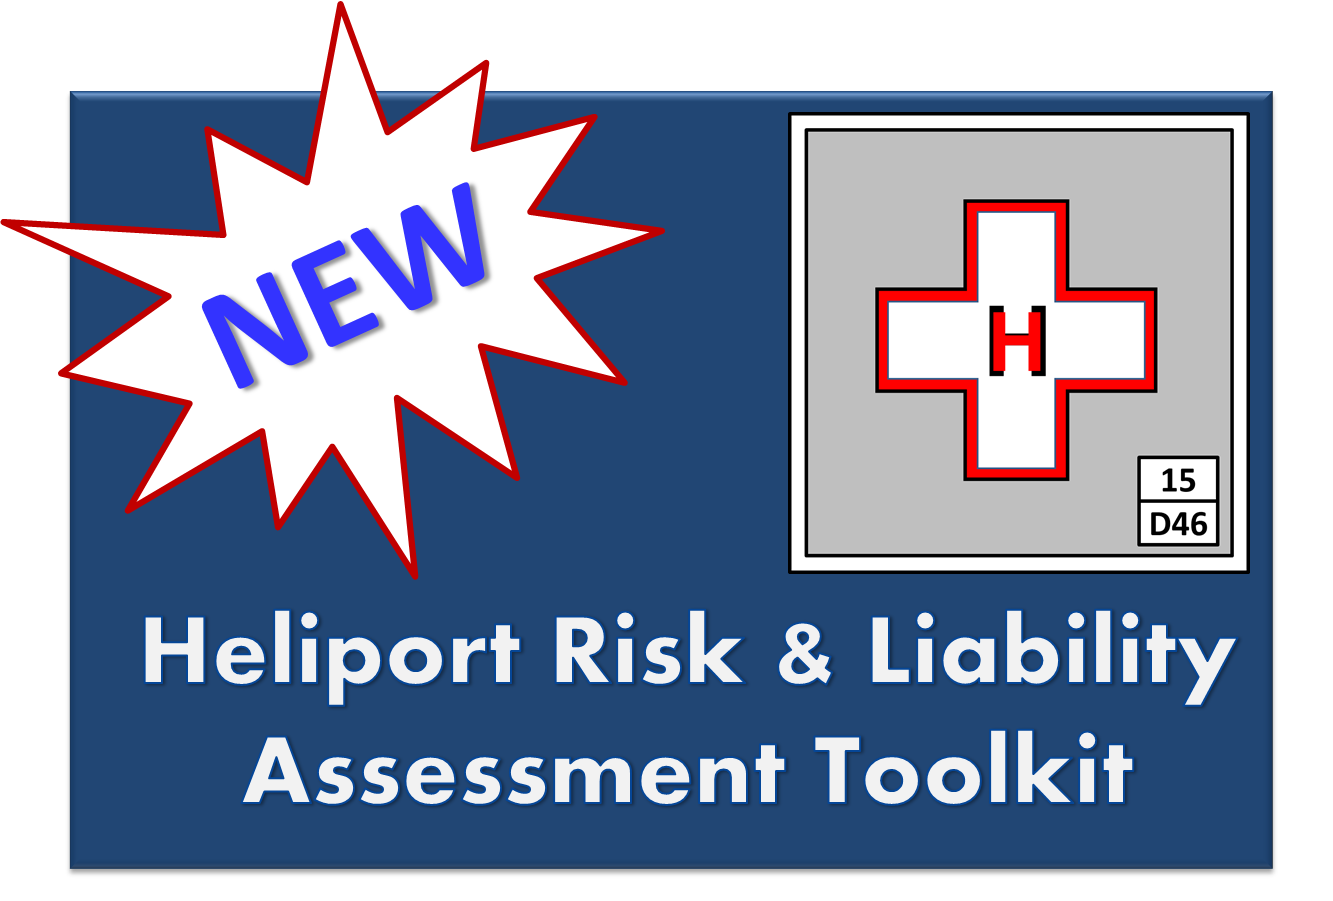 Heliport Risk and Liability Assessment Toolkit - Heliexperts International, LLC